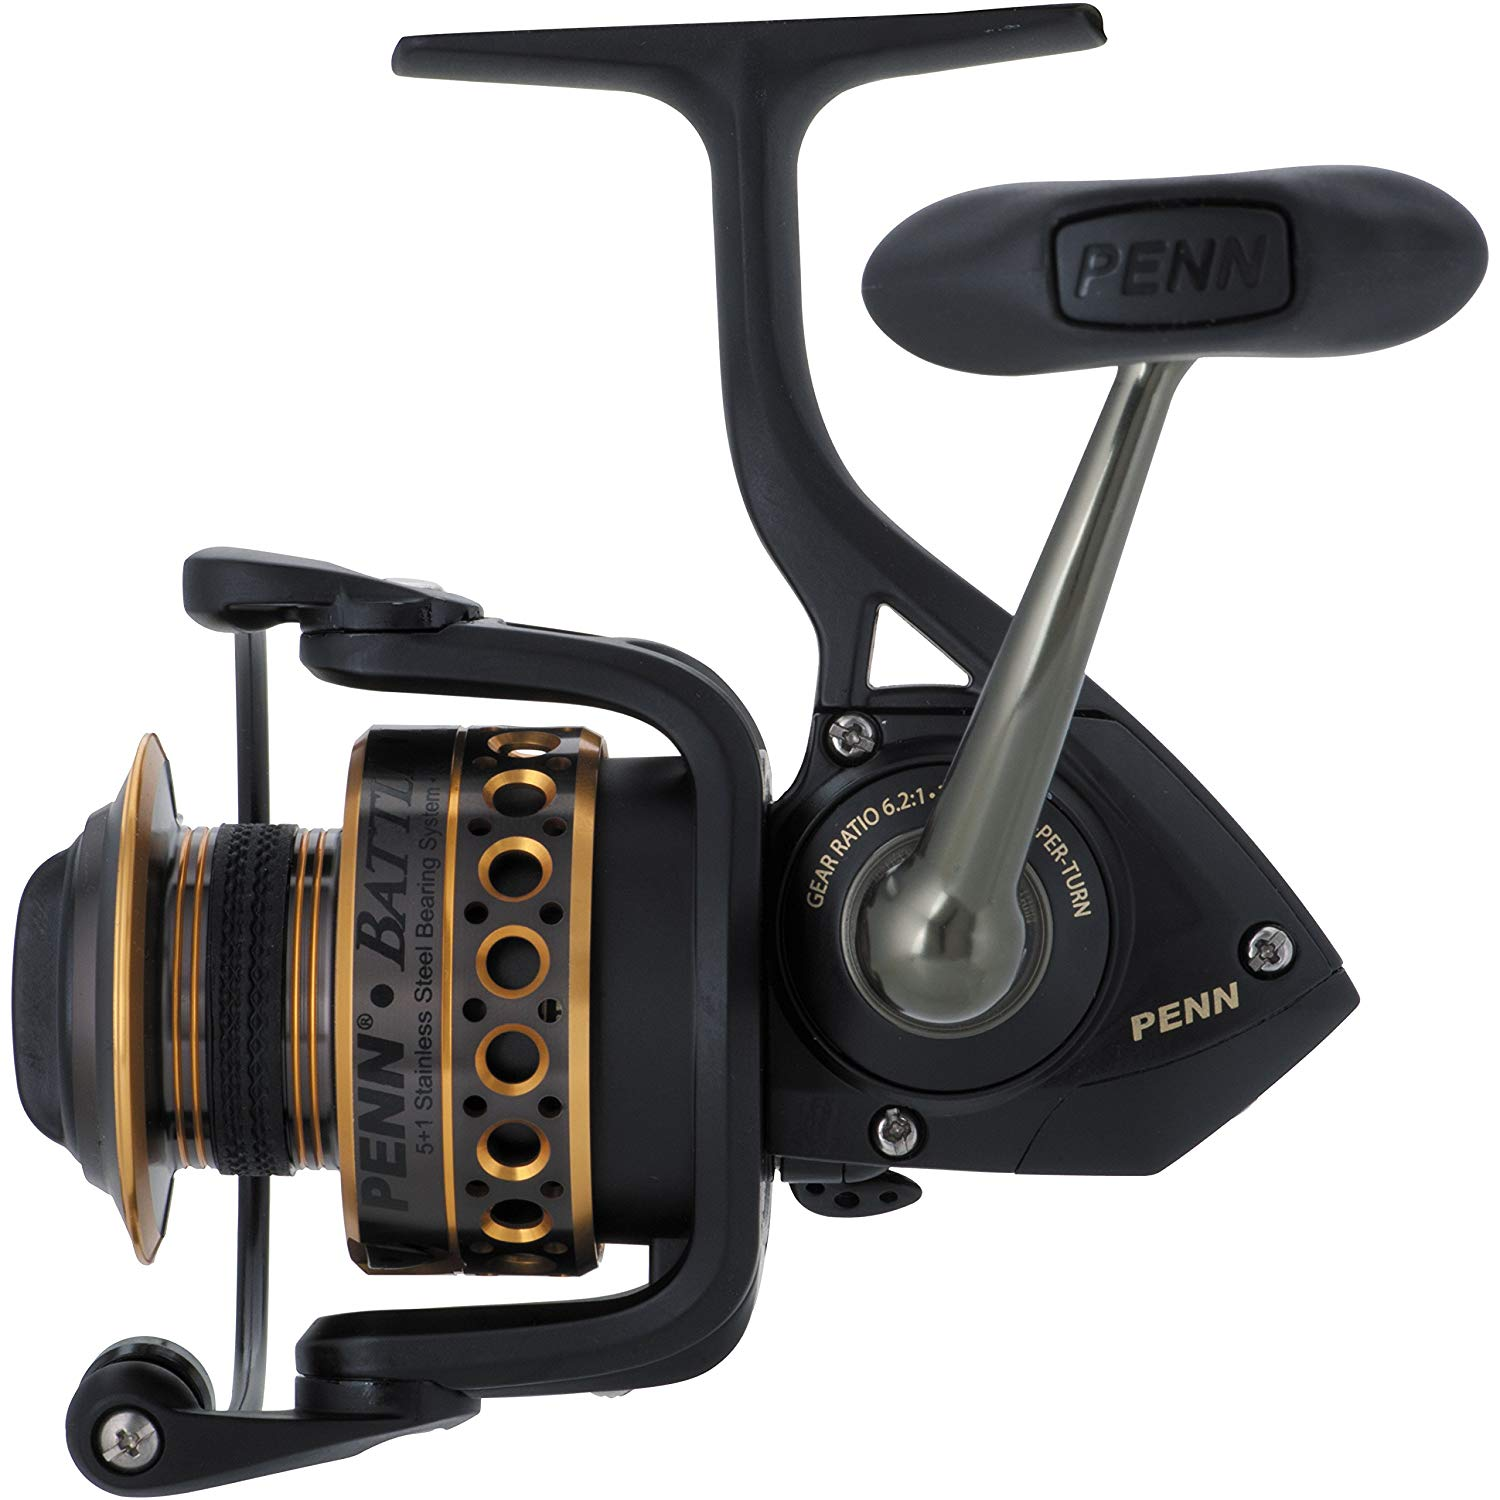 Penn-Battle-II-Spinning-Fishing-Reel-3